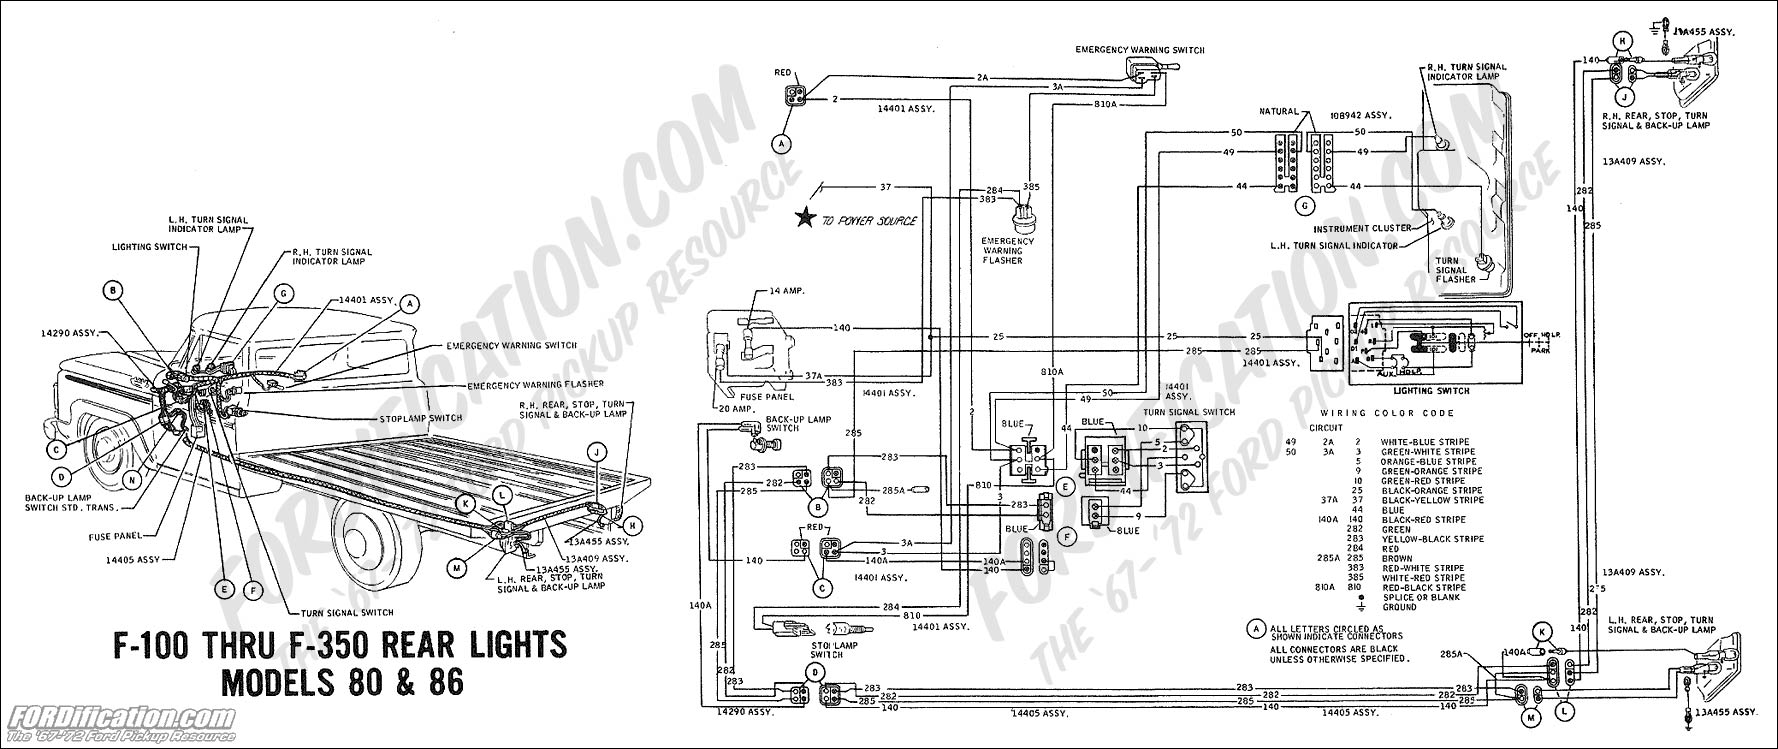 hight resolution of 1987 ford f700 wiring diagram wiring diagram document guide ford truck brake diagrams 1987 ford f700